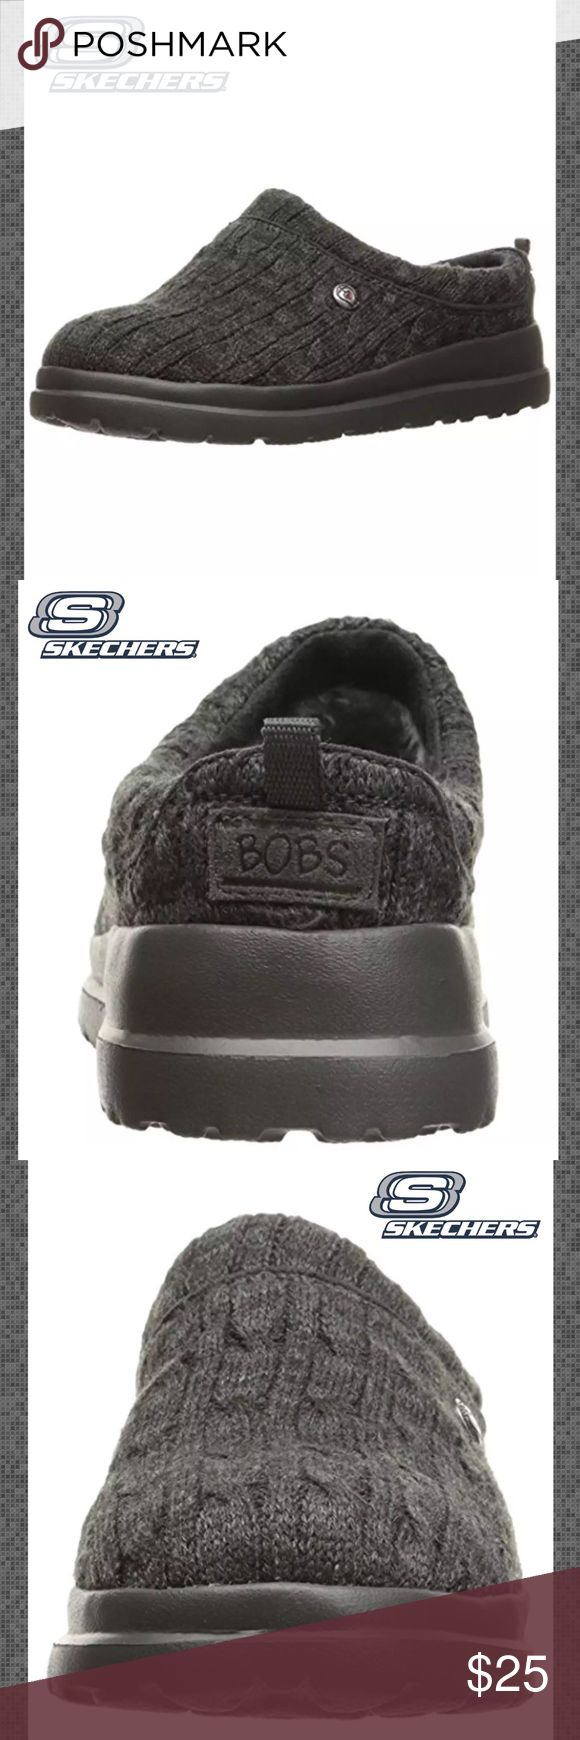 SKETCHERS 'Bobs' Gray Clog Slippers 💥Please See Above Picture For Detailed Description💥 Sketchers Shoes Slippers